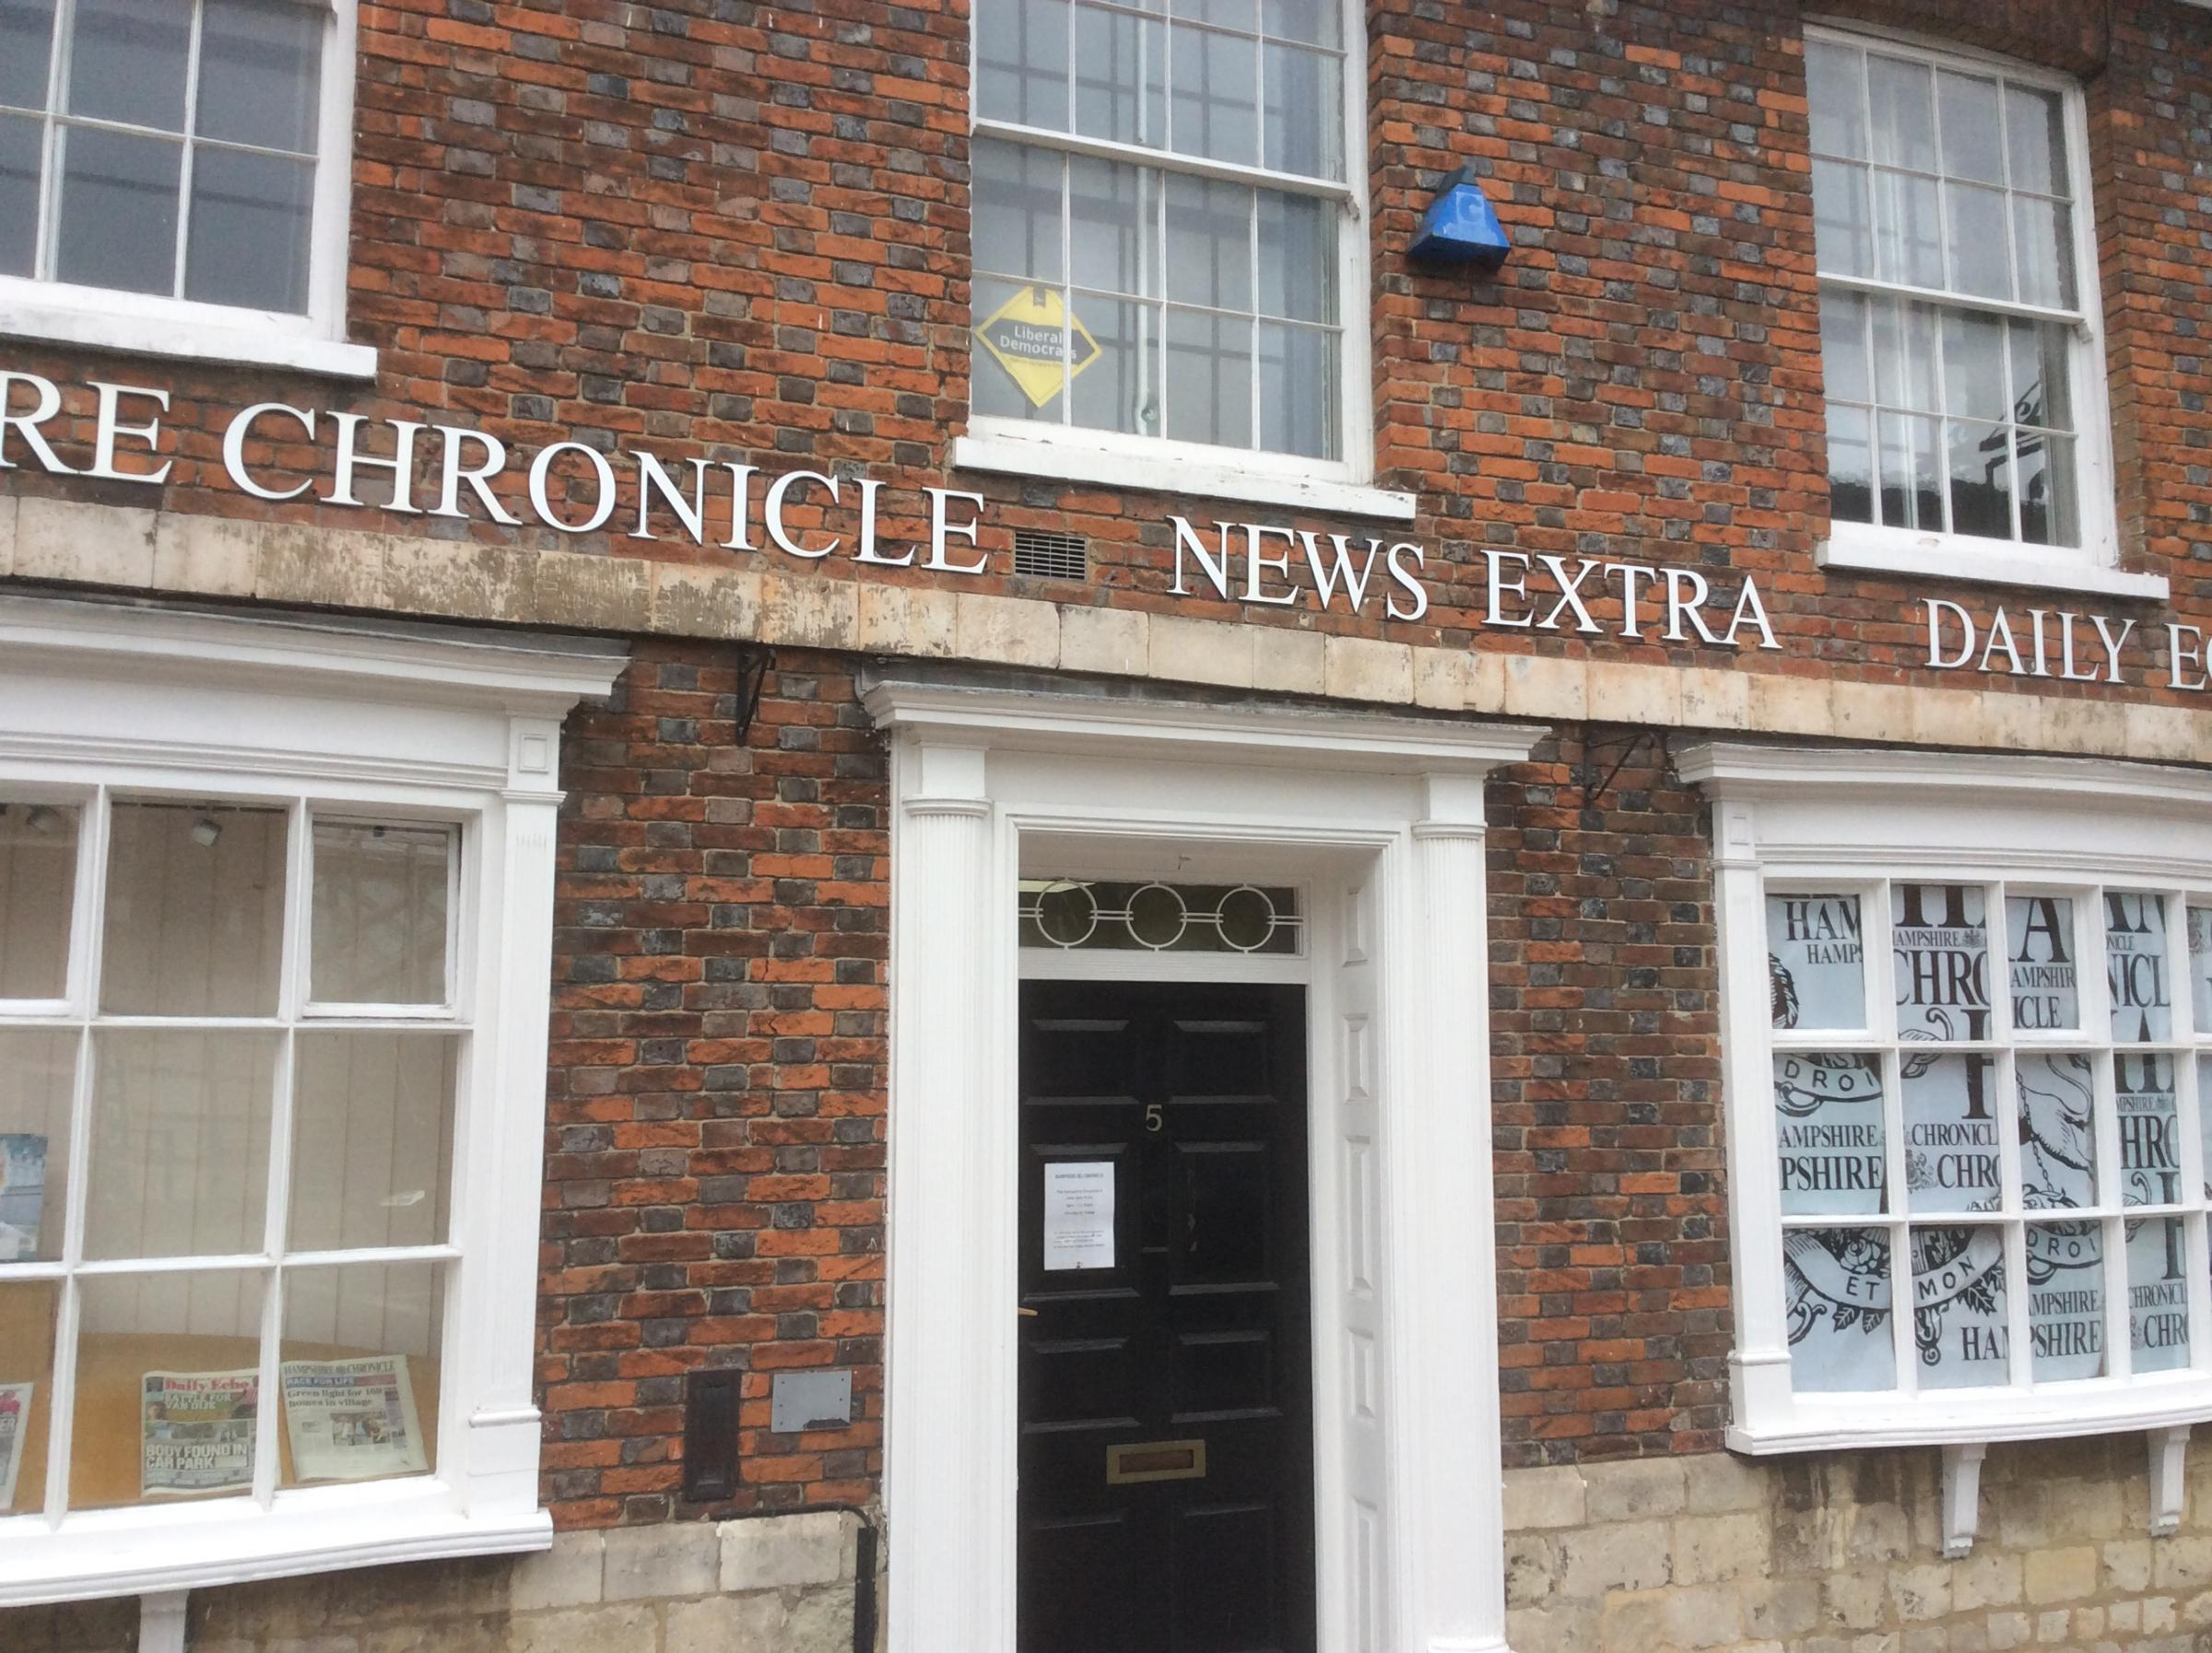 Chronicle office at 5 Upper Brook Street